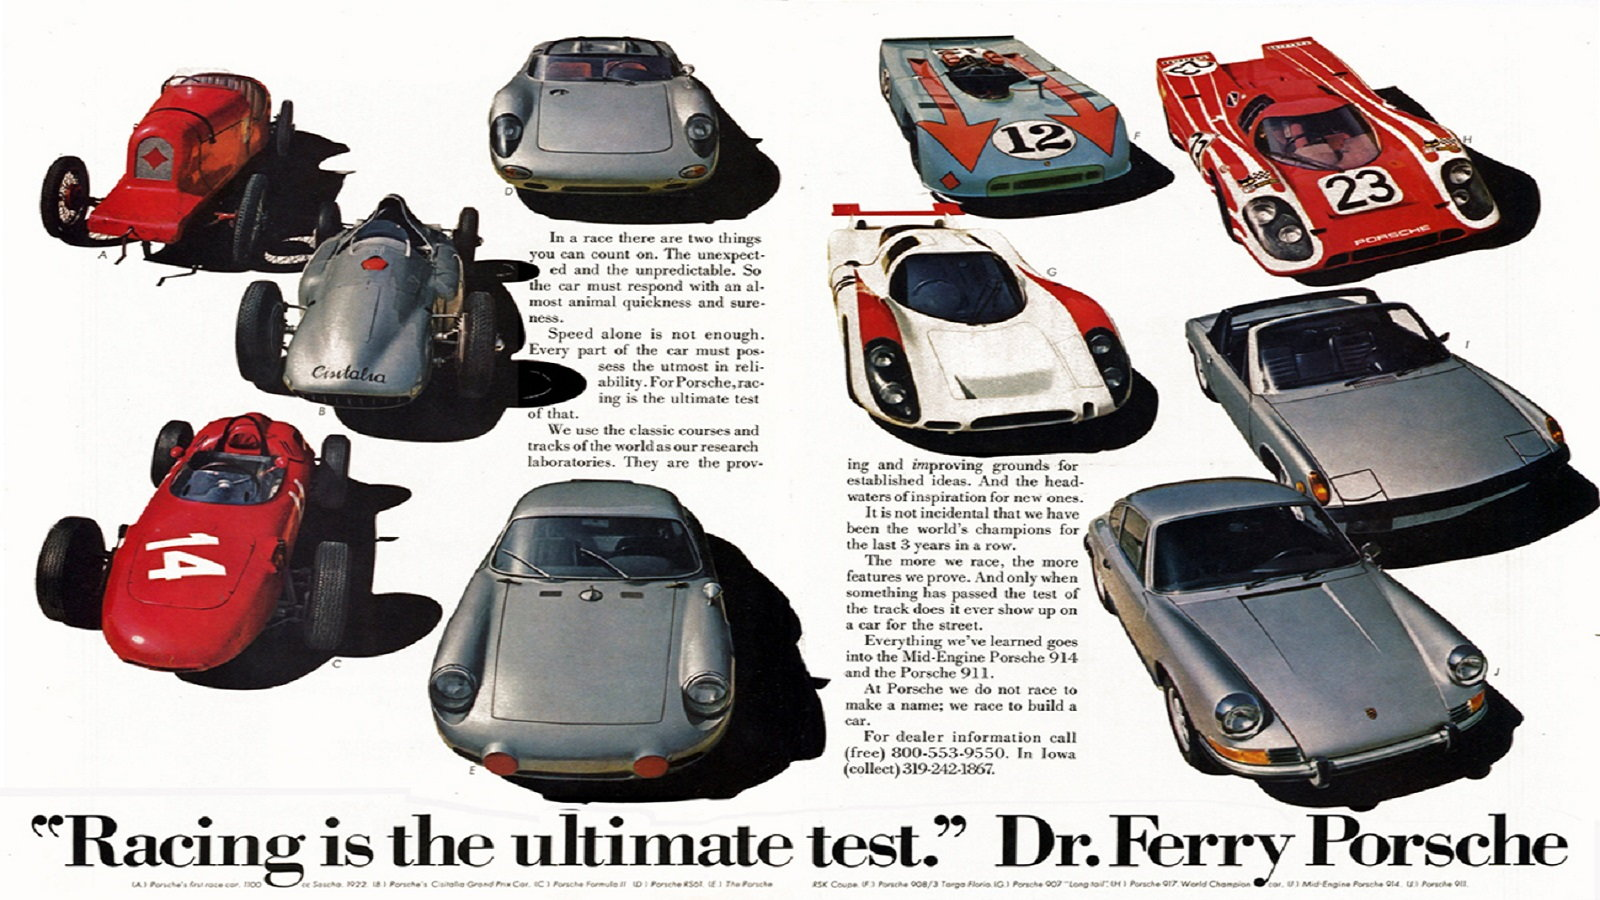 Racing - The Ultimate Test